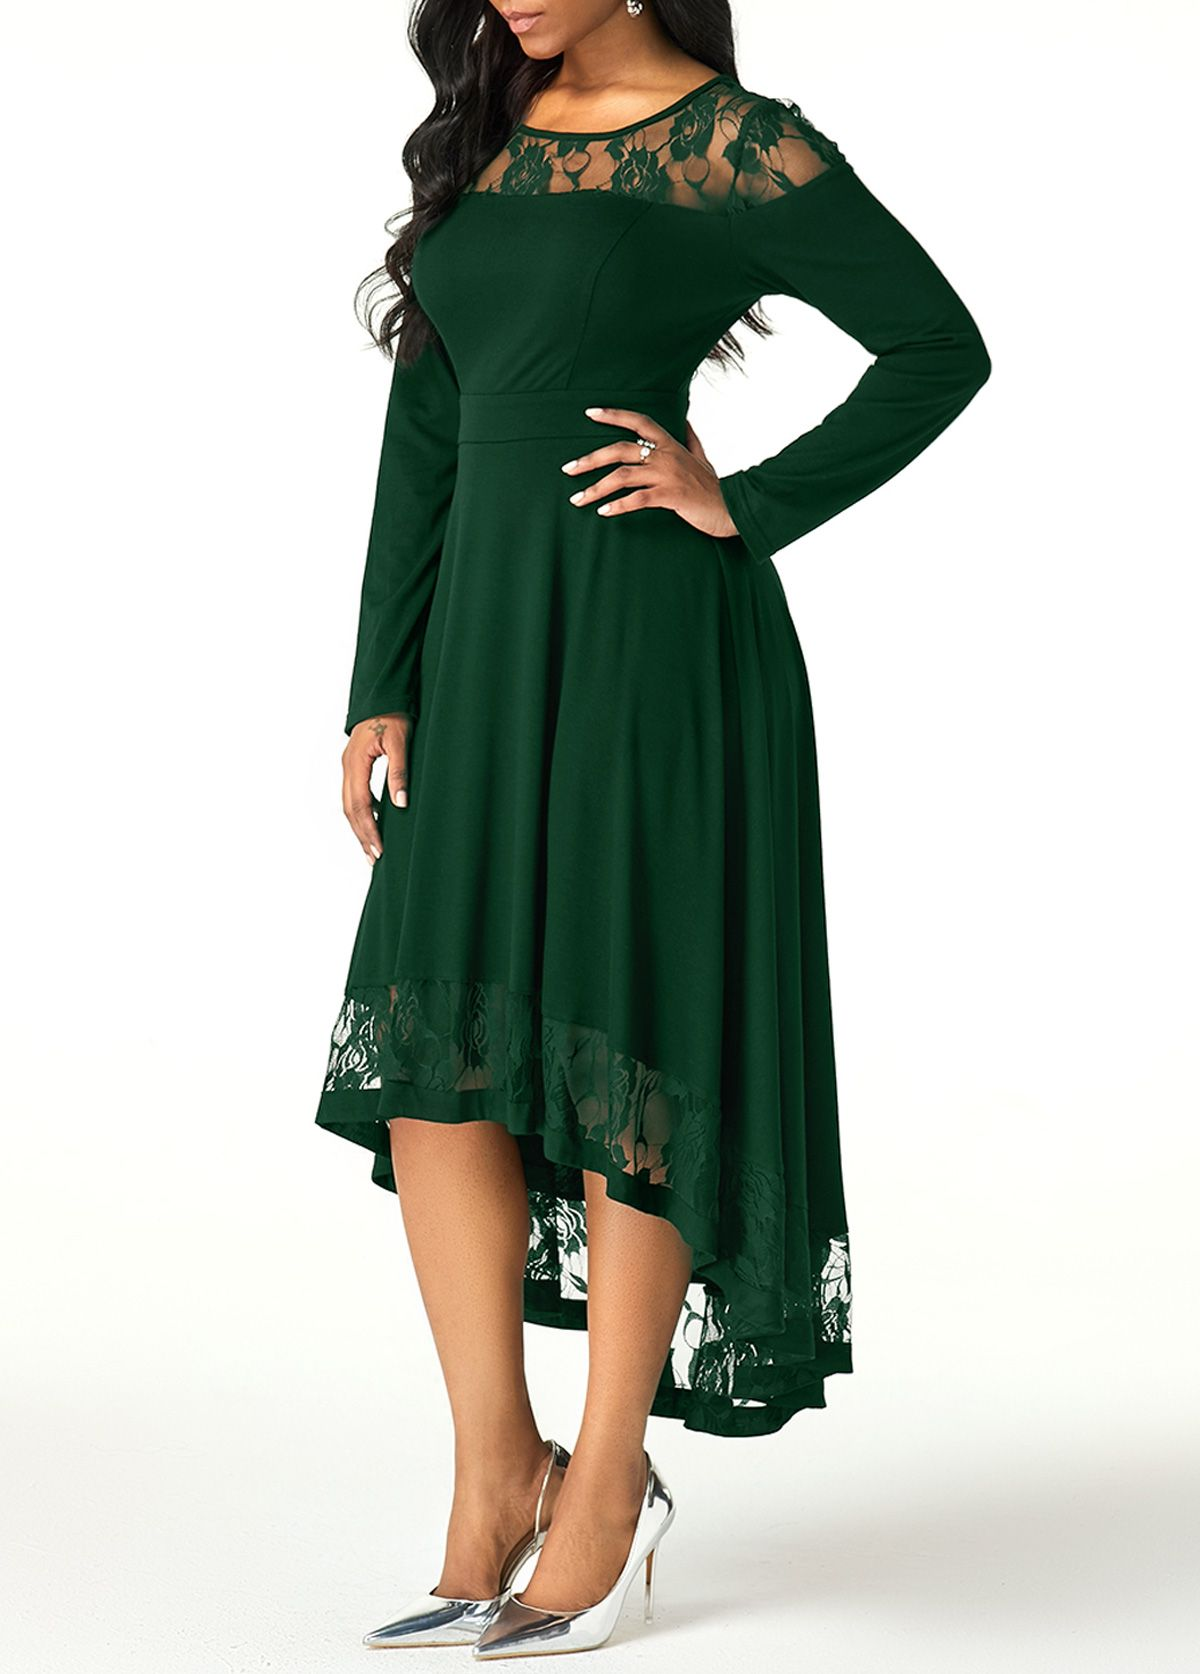 Lace Panel Green Long Sleeve High Low Dress Rotita Com Usd 31 96 Lace Dress With Sleeves Long Sleeve High Low Dress Formal Dresses With Sleeves [ 1674 x 1200 Pixel ]